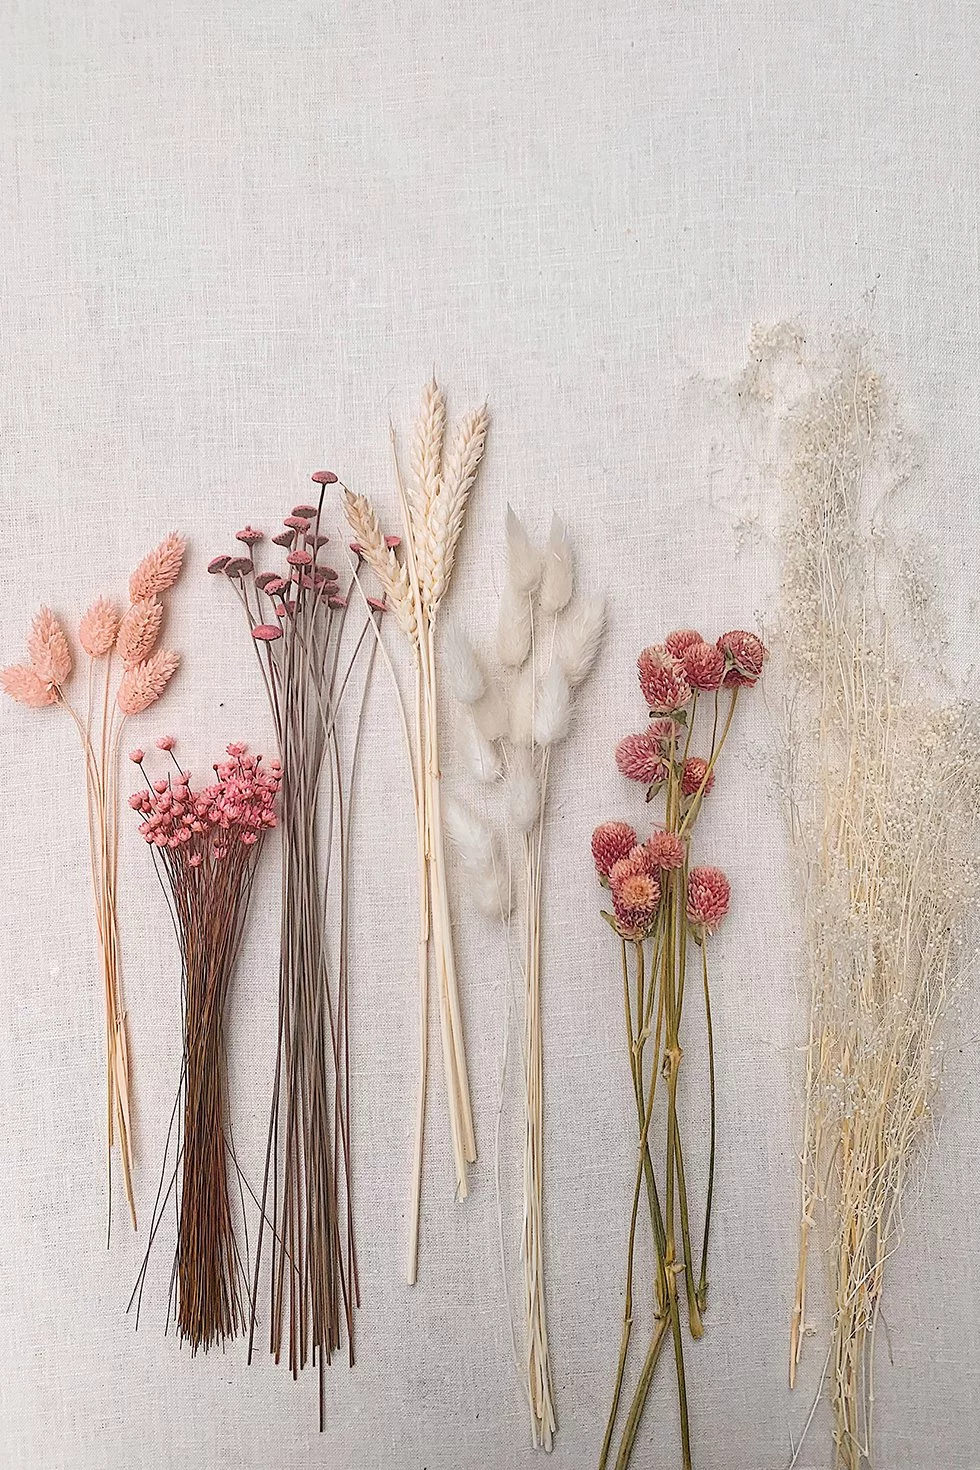 Diy Dried Flower Bouquet Honestly Wtf Flower Bouquet Diy Dried Flower Arrangements Dried Flower Bouquet